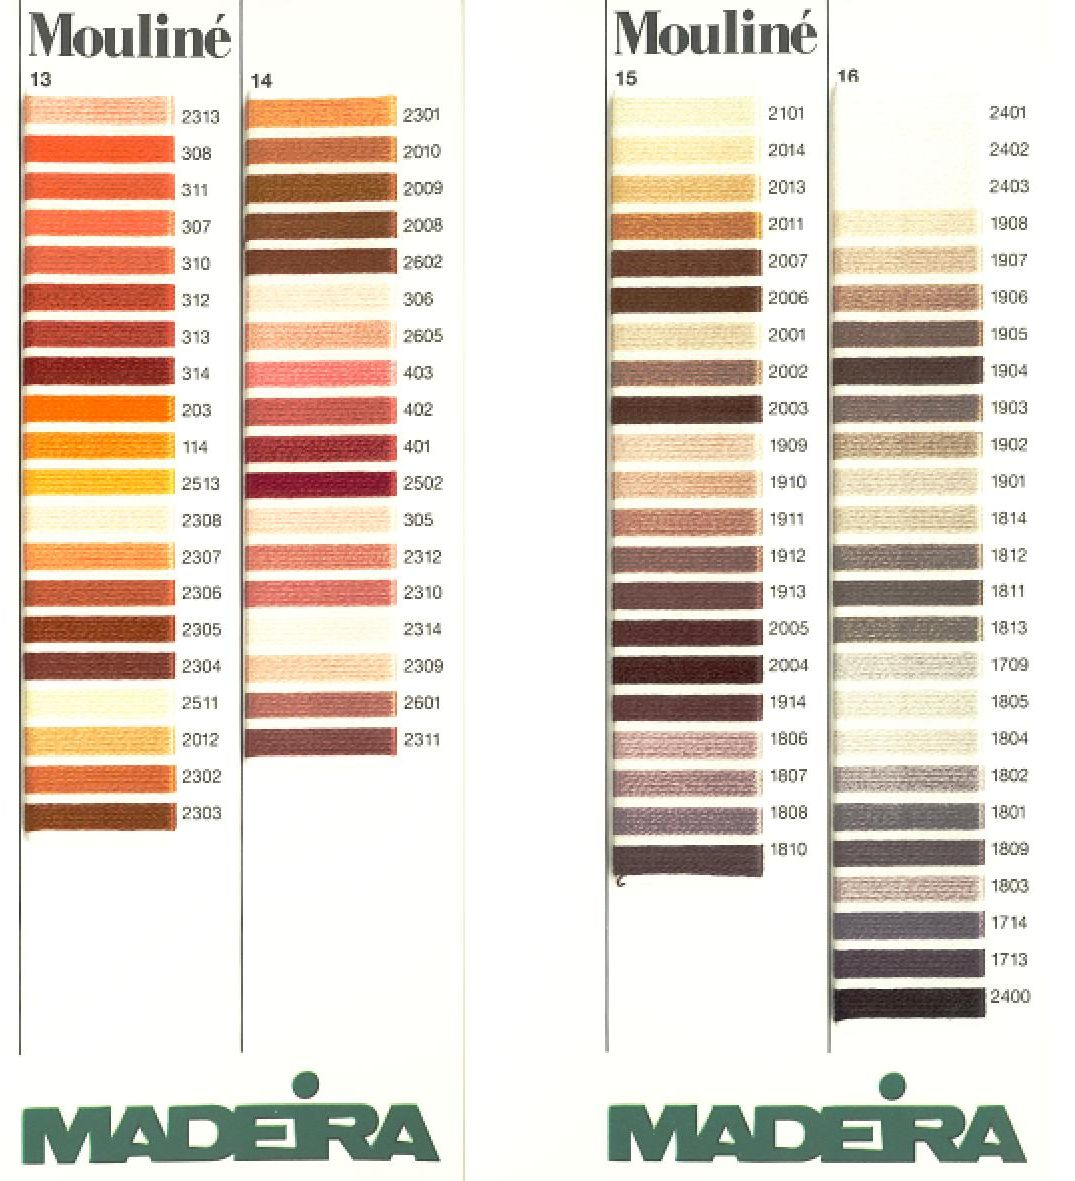 Maderia Mouline Stranded Cotton Hand Embroidery Thread Colour Chart Page 4